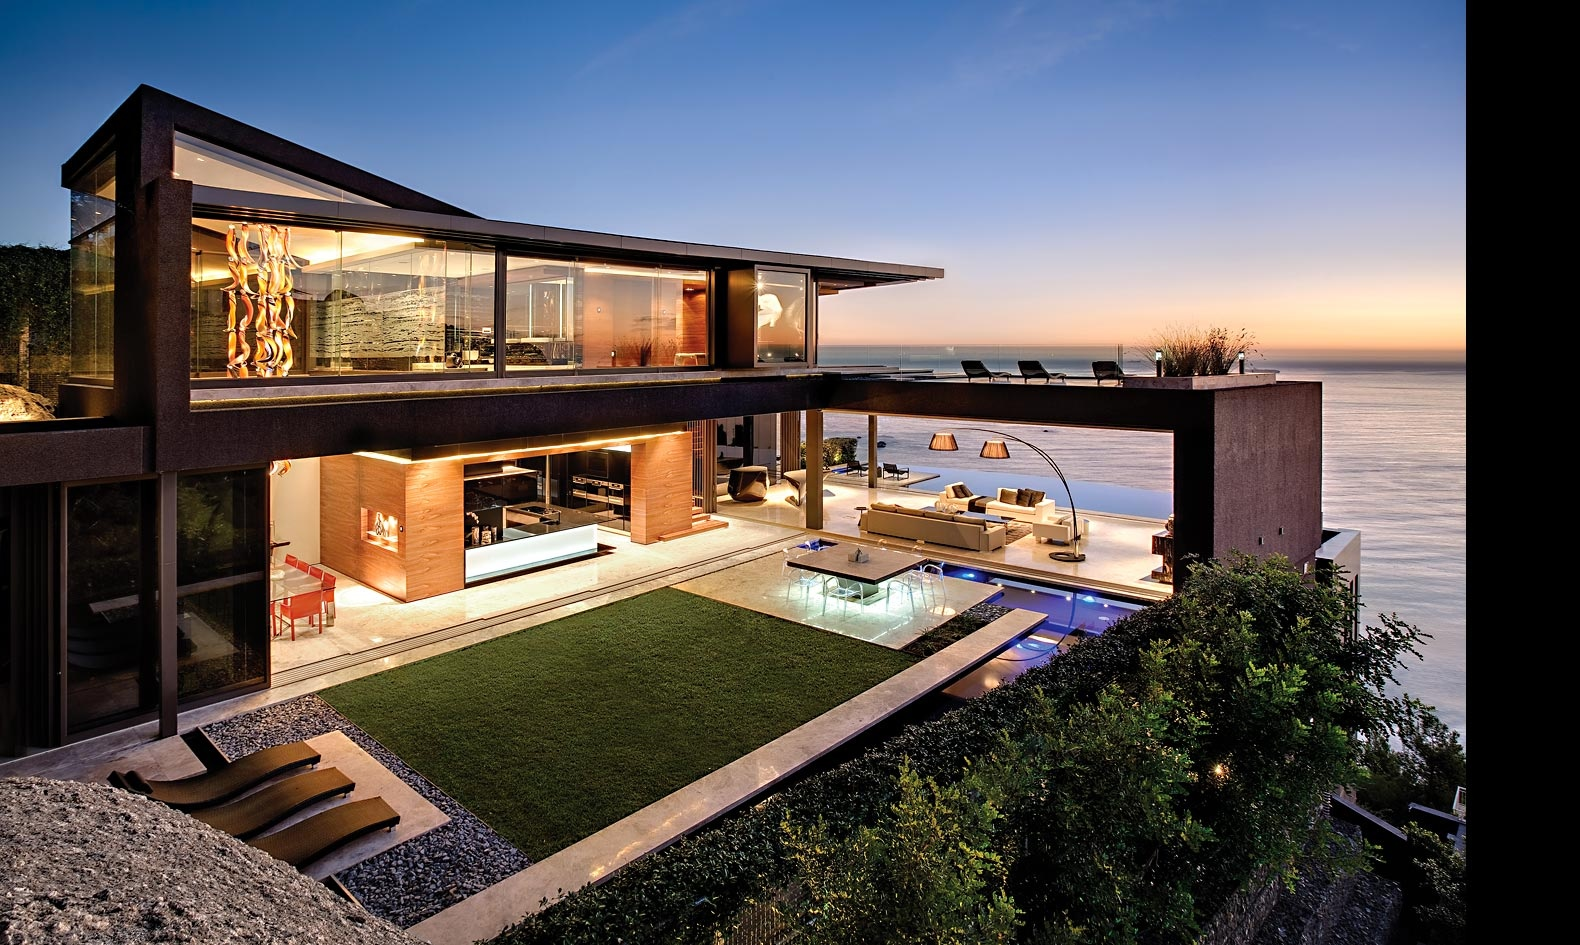 Luxury Home Wallpaper Download Luxury Home HD Wallpapers For 1580x945